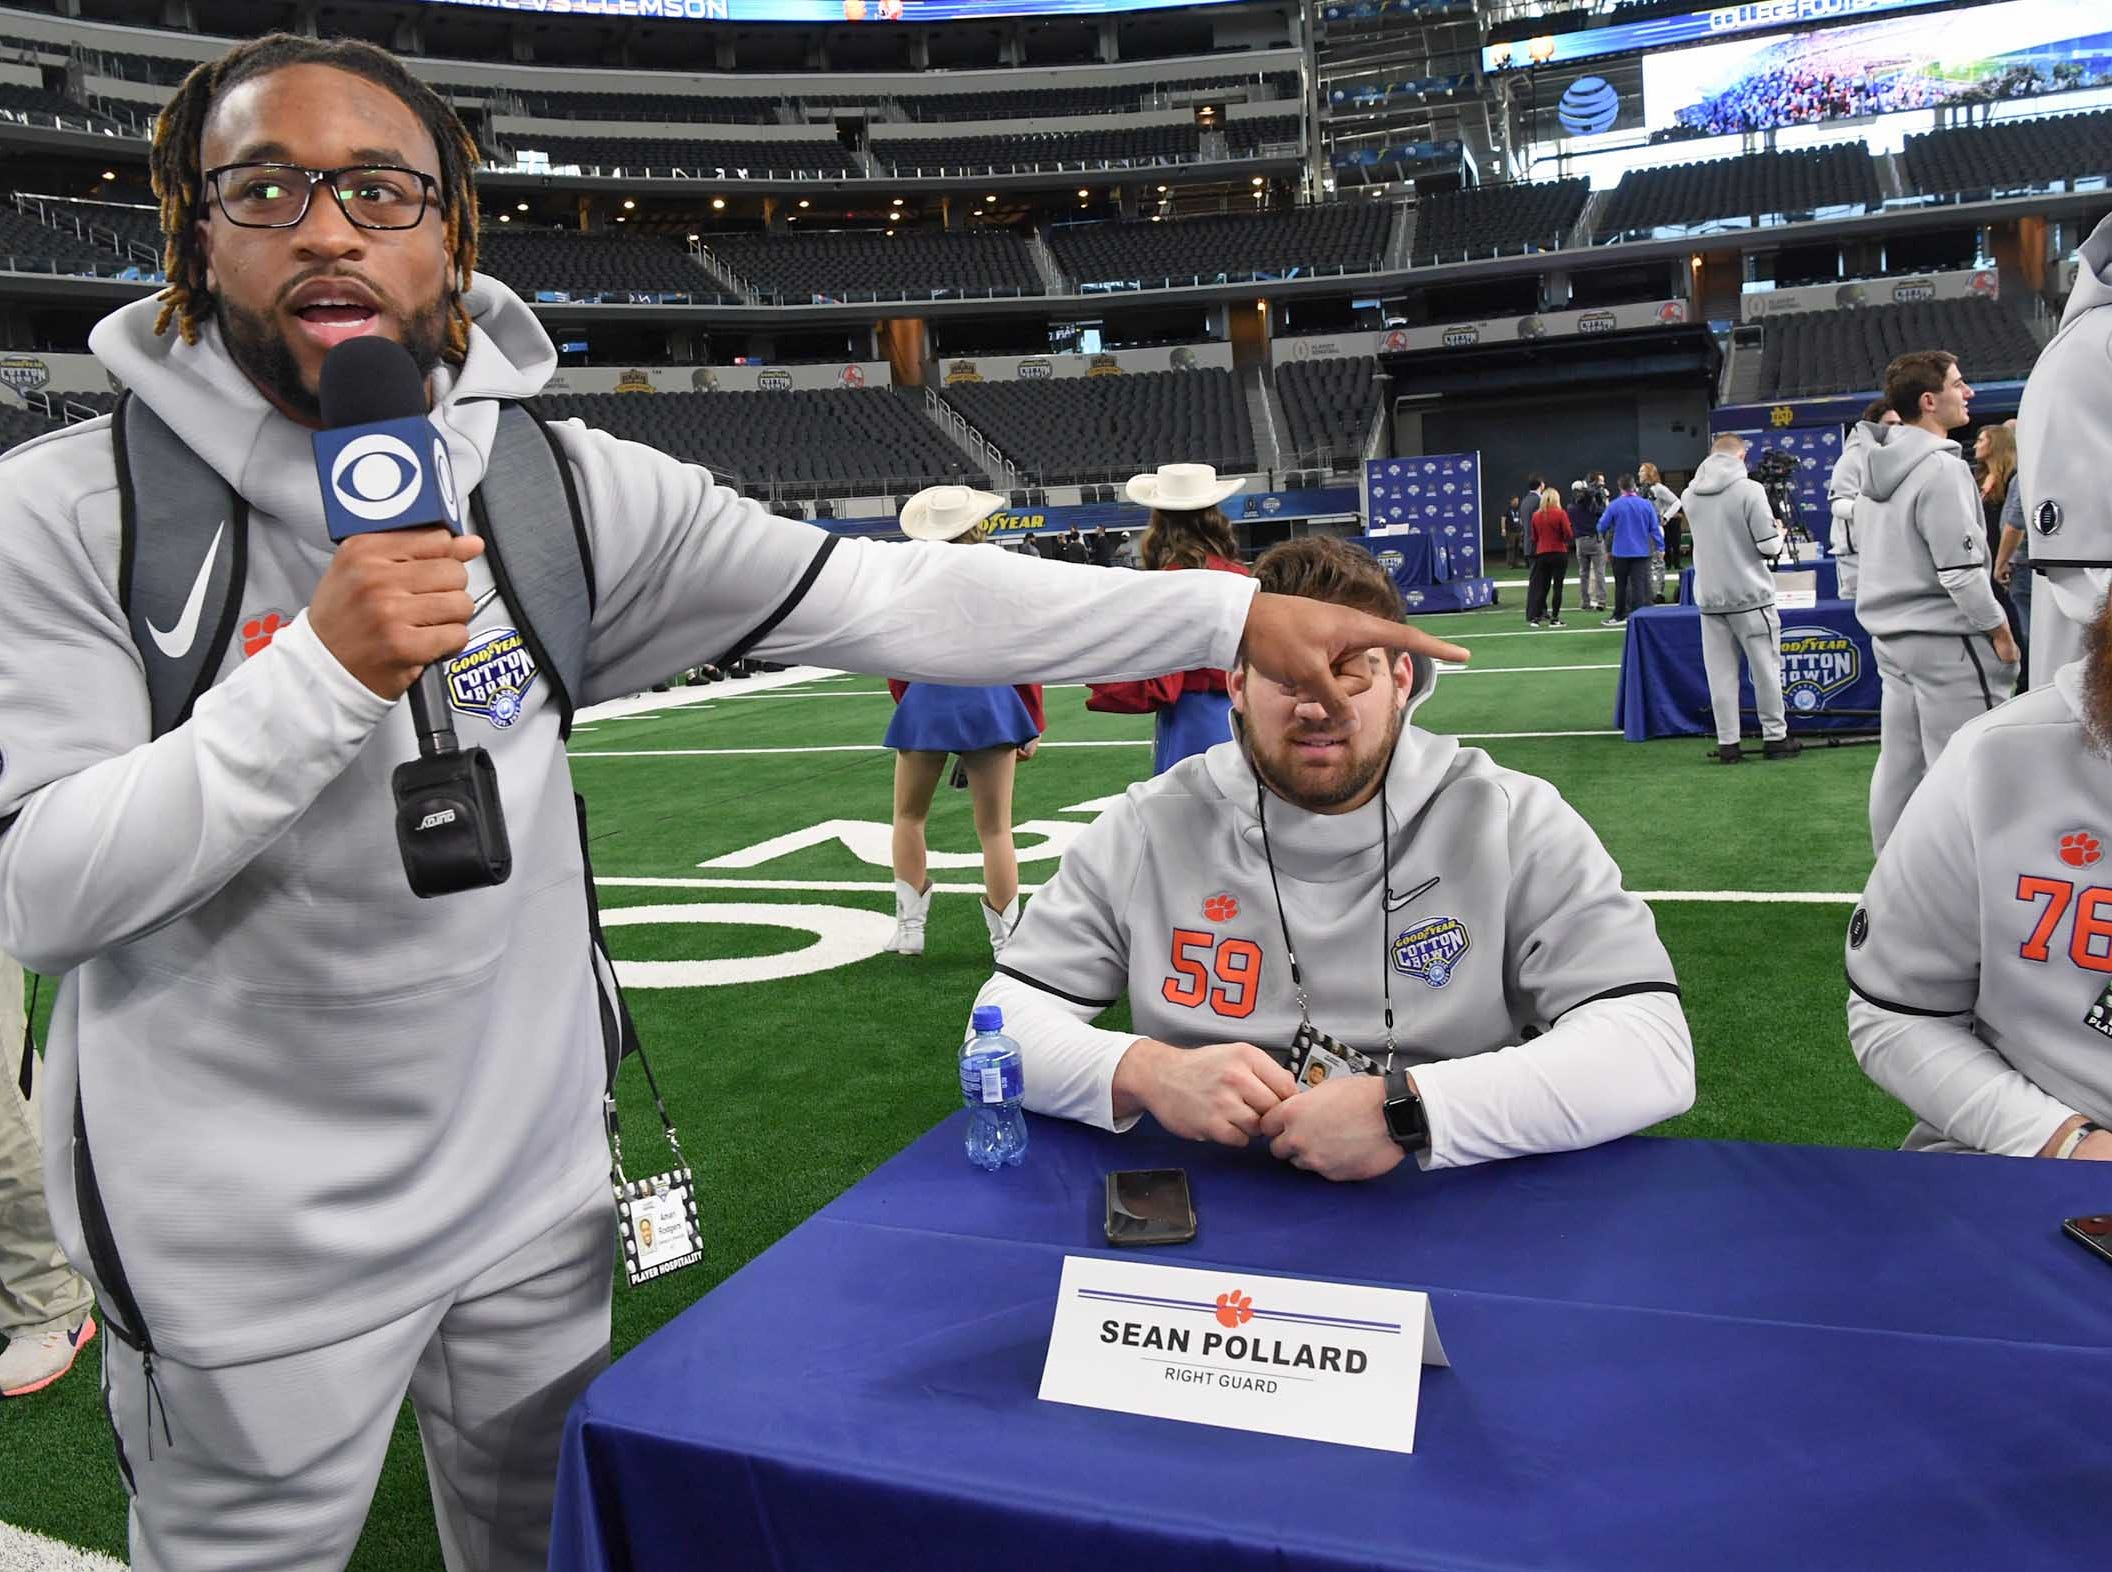 Clemson wide receiver Amari Rodgers, left, interviews offensive lineman Gage Cervenka (59) and offensive lineman Sean Pollard (76) during Media Day for Clemson and Notre Dame at the AT&T Stadium in Dallas December 27, 2018.